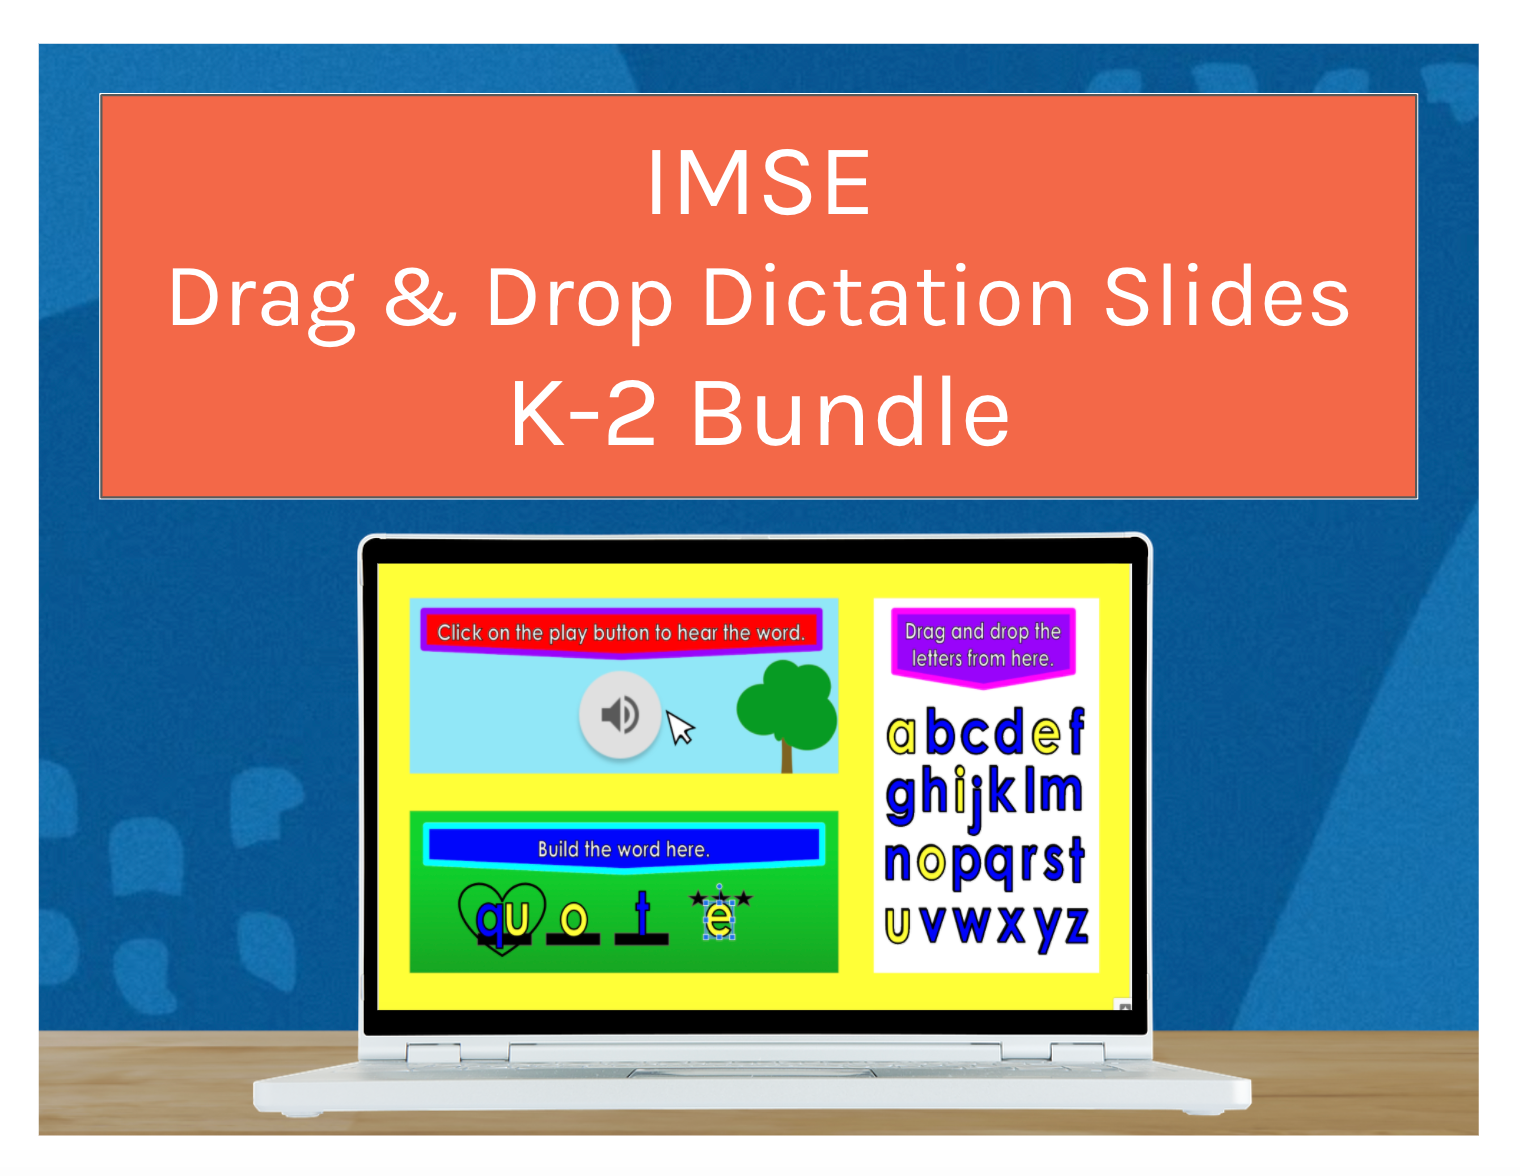 IMSE Drag & Drop K-2 Dictation Slide Bundle